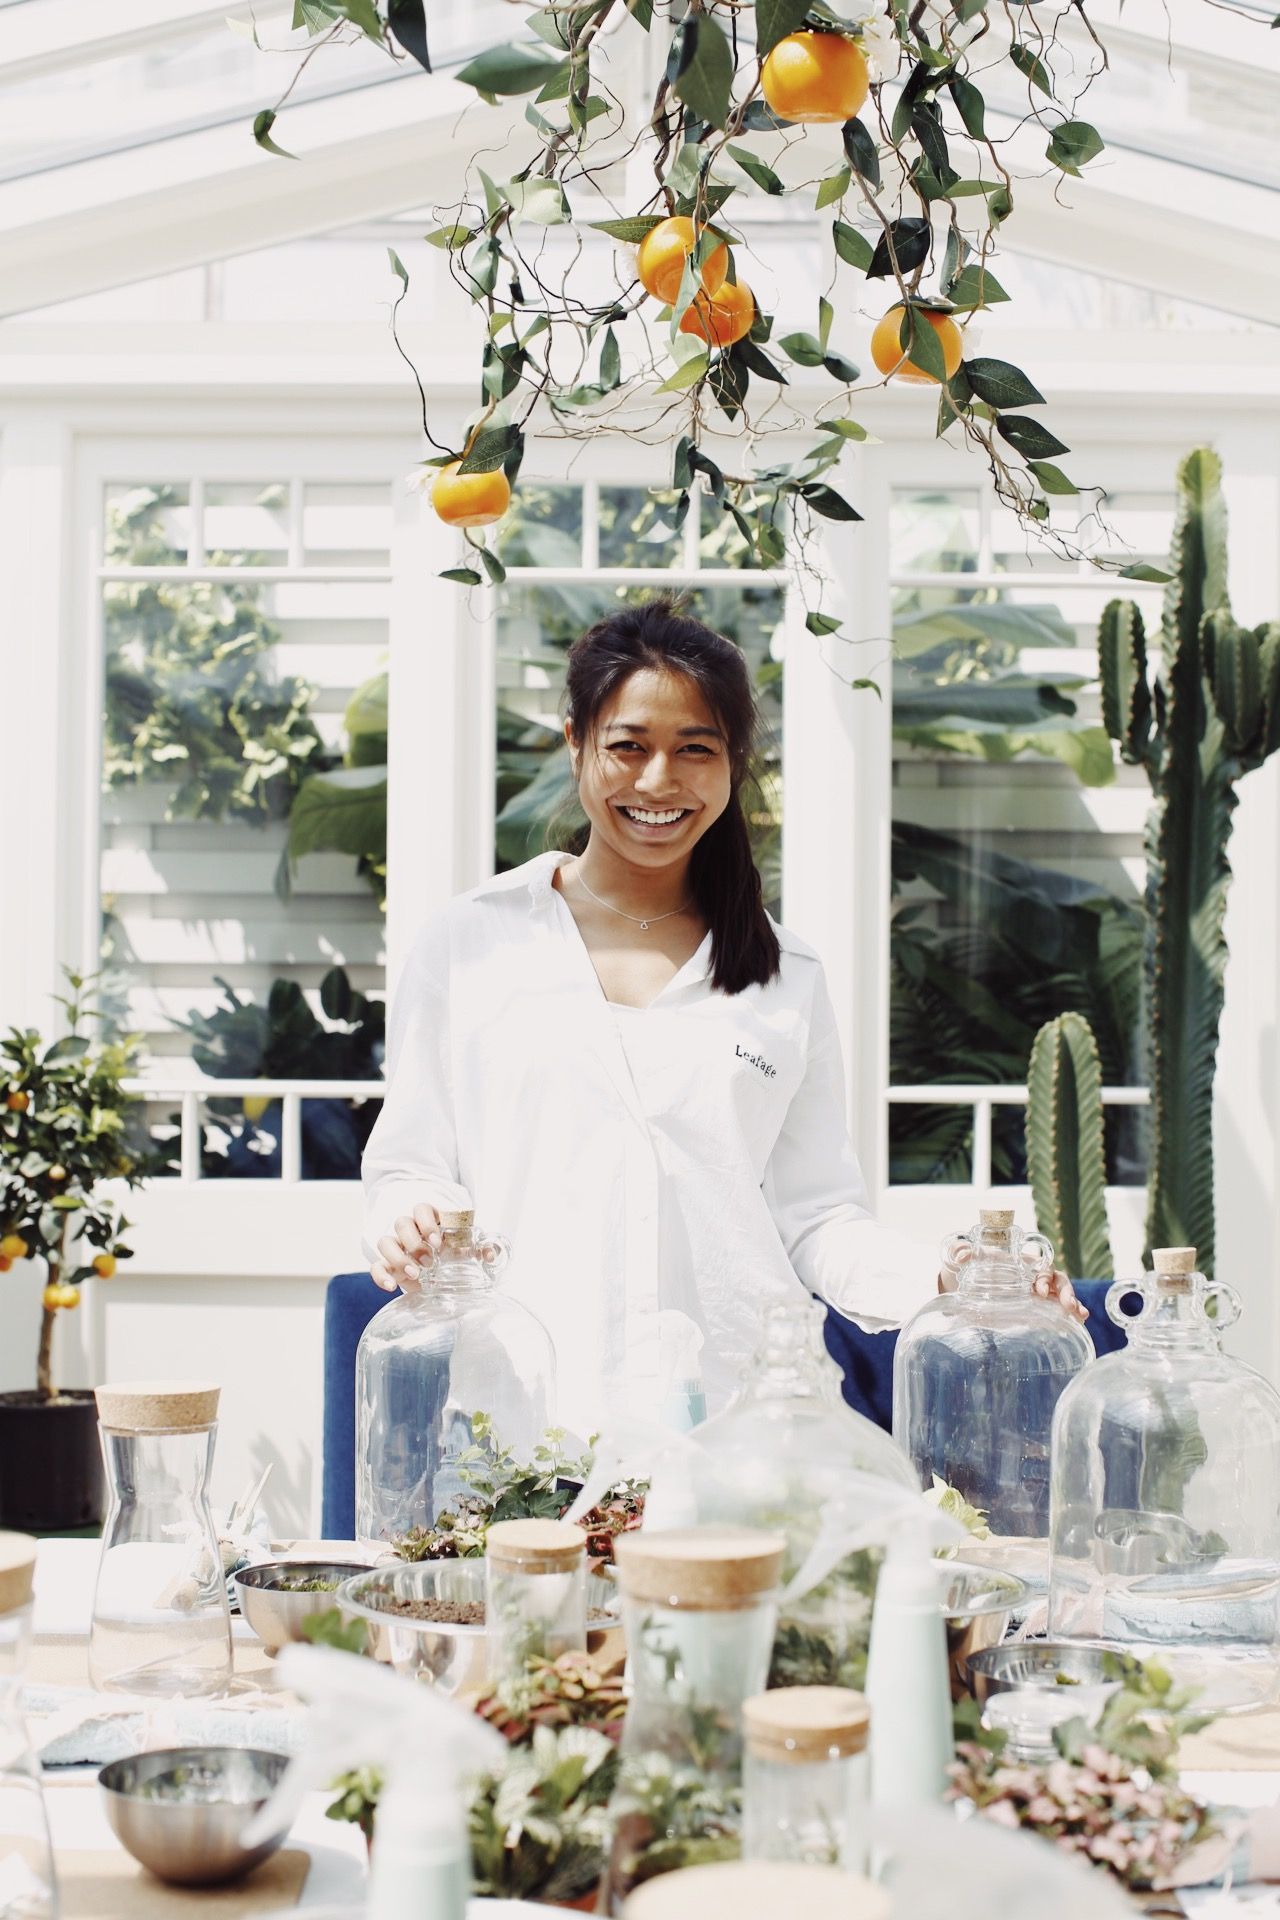 Kay Suppamas, Founder of Leafage